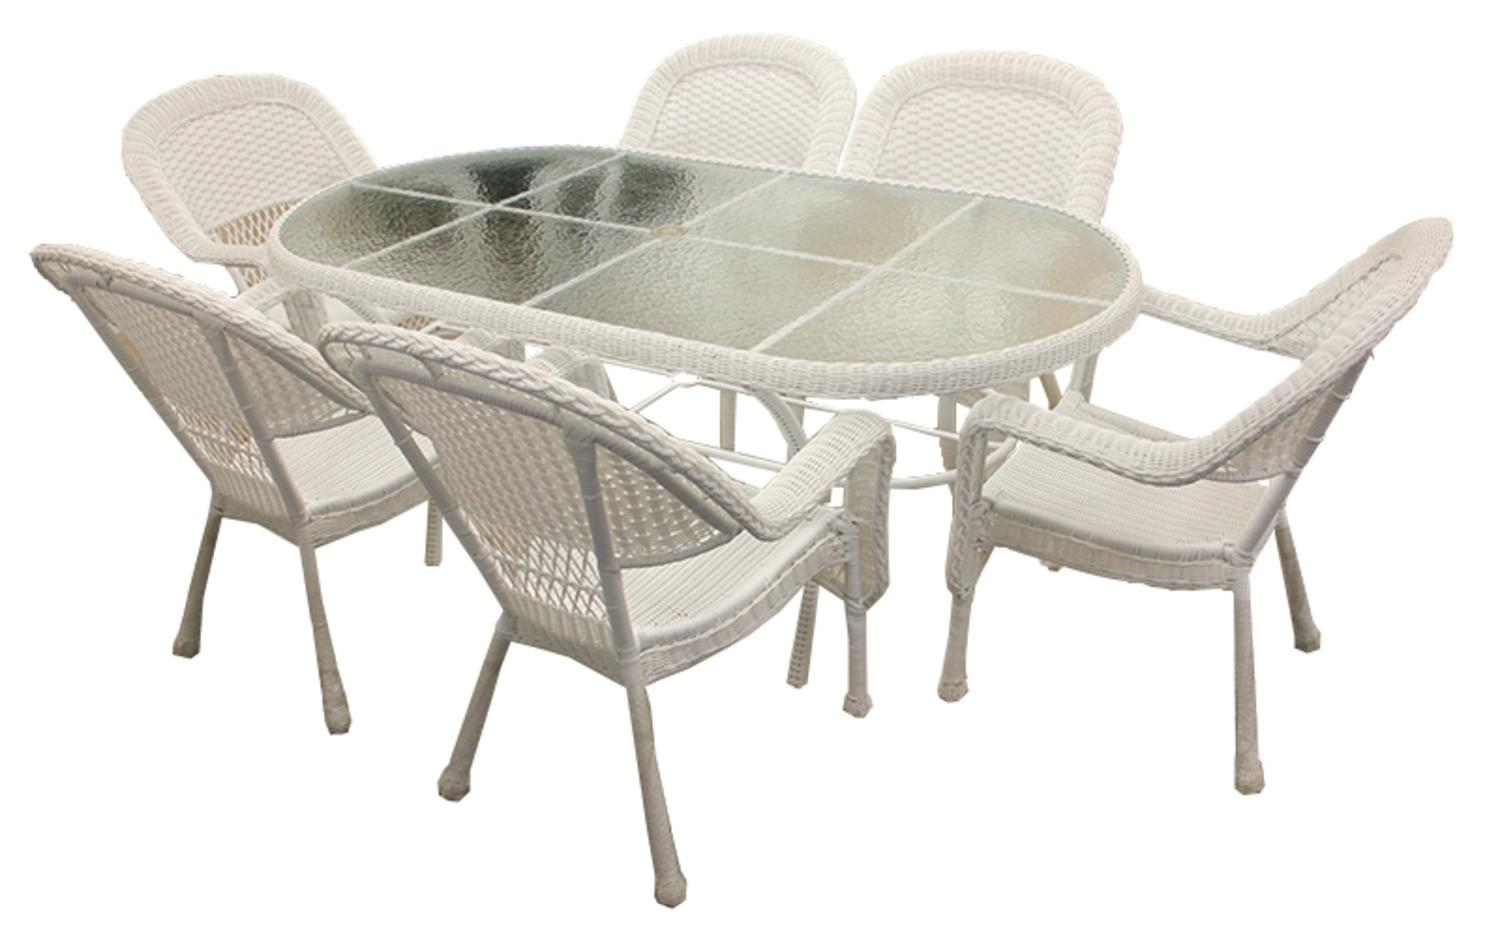 Dining Set For 6 Baxton Studio Monte Midcentury Modern  : ebd806d1 794d 44c9 9bfc 51dfcc5a4fa510af4e6ebb2a3ec439b9e3c79b3997ed2 from www.checkoutethiopia.com size 1500 x 947 jpeg 93kB